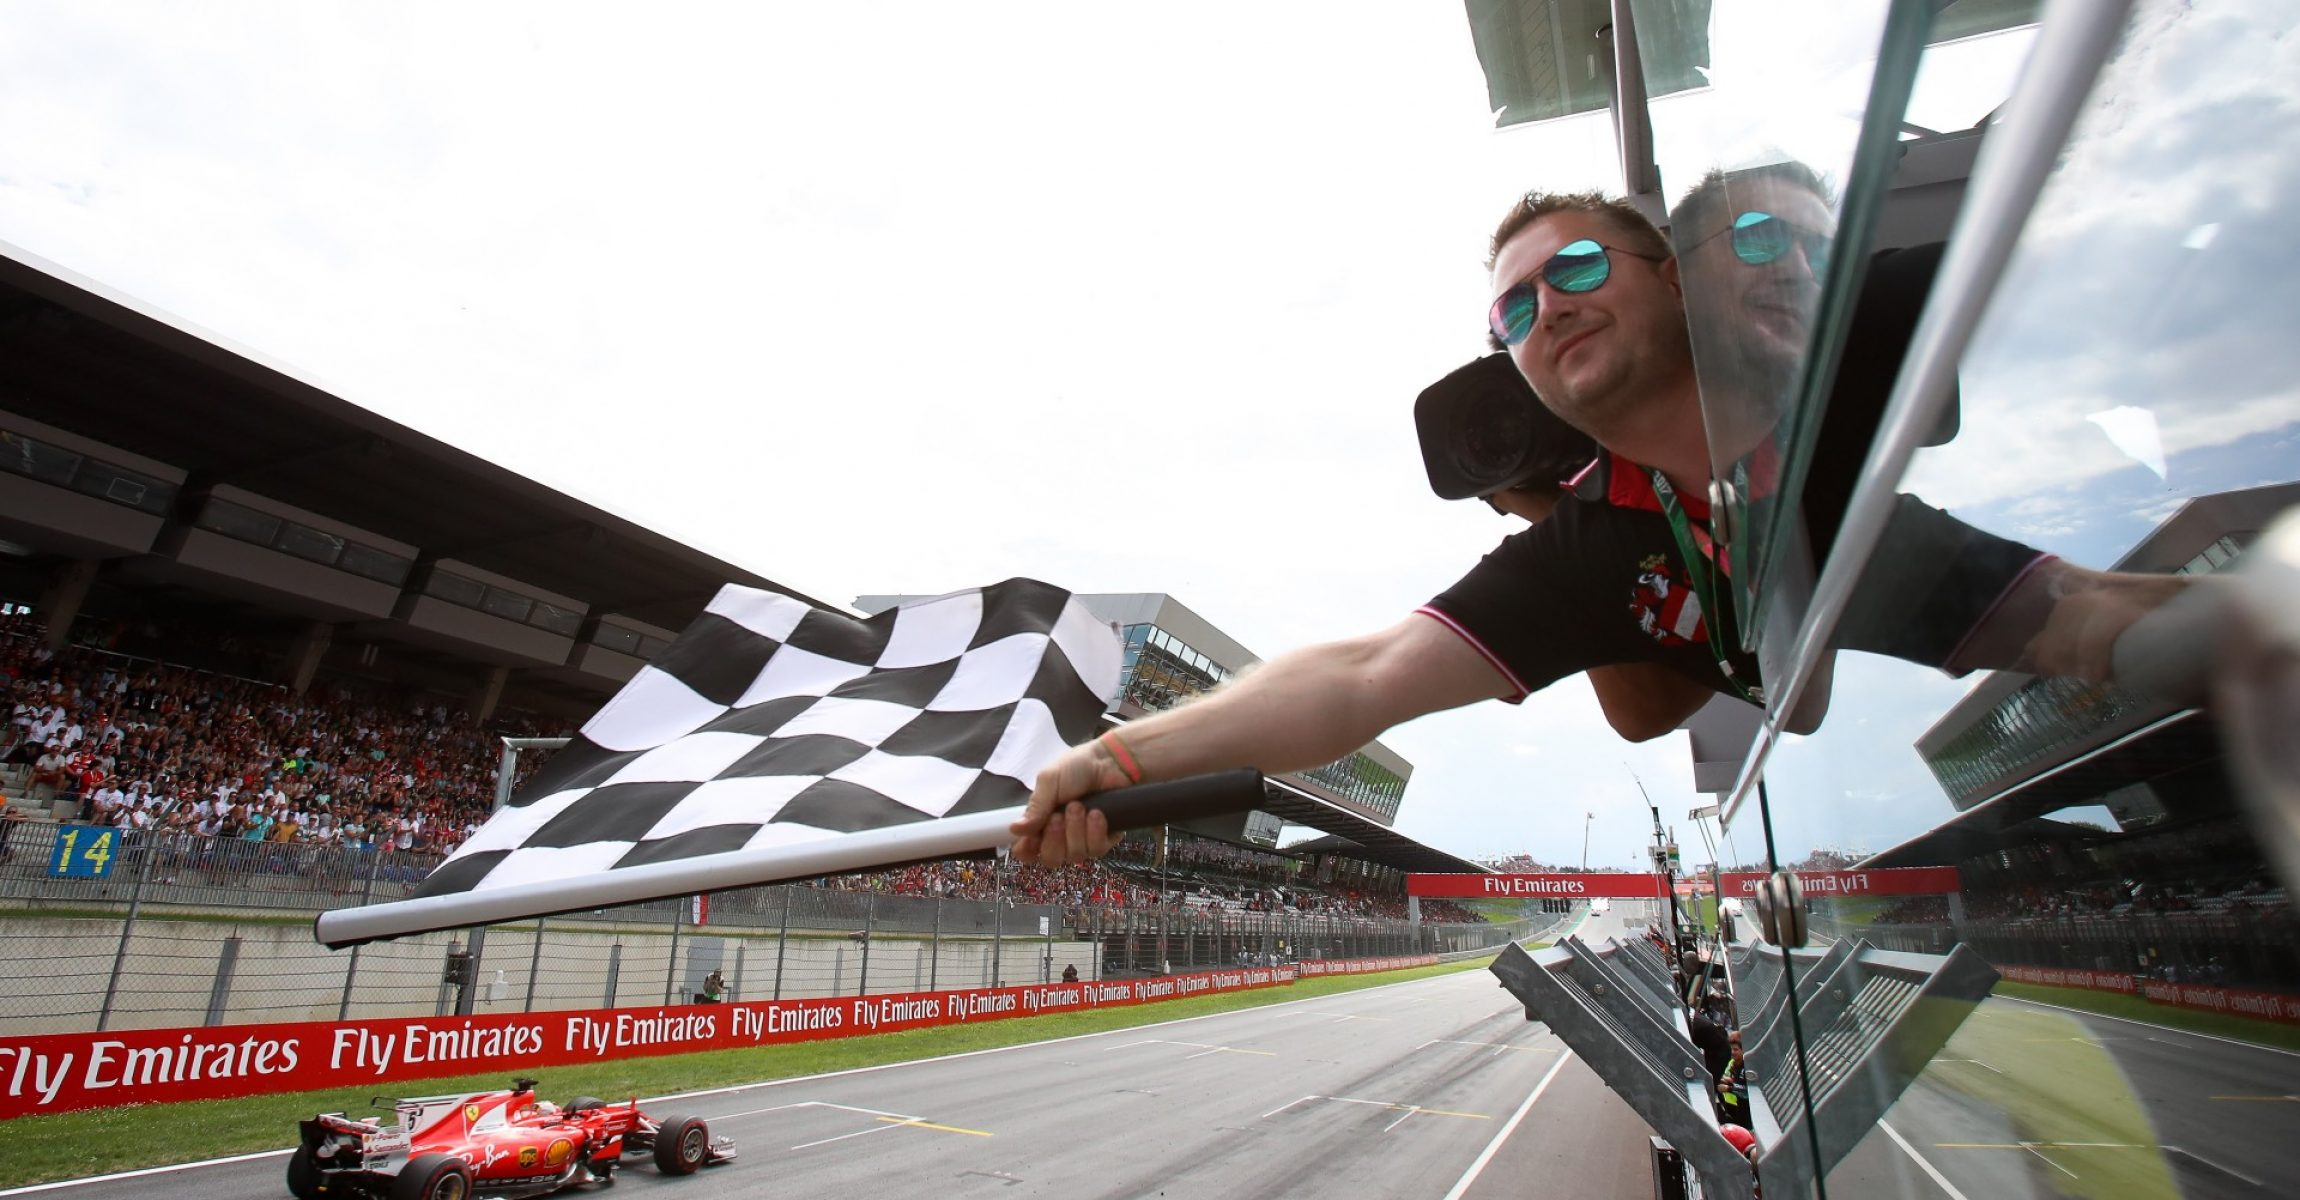 SPIELBERG,AUSTRIA,09.JUL.17 - MOTORSPORTS, FORMULA 1 - Grand Prix of Austria, Red Bull Ring, award ceremony. Image shows the flagman with the chequered flag and Sebastian Vettel (GER/ Ferrari). Photo: GEPA pictures/ Christian Walgram - For editorial use only. Image is free of charge.